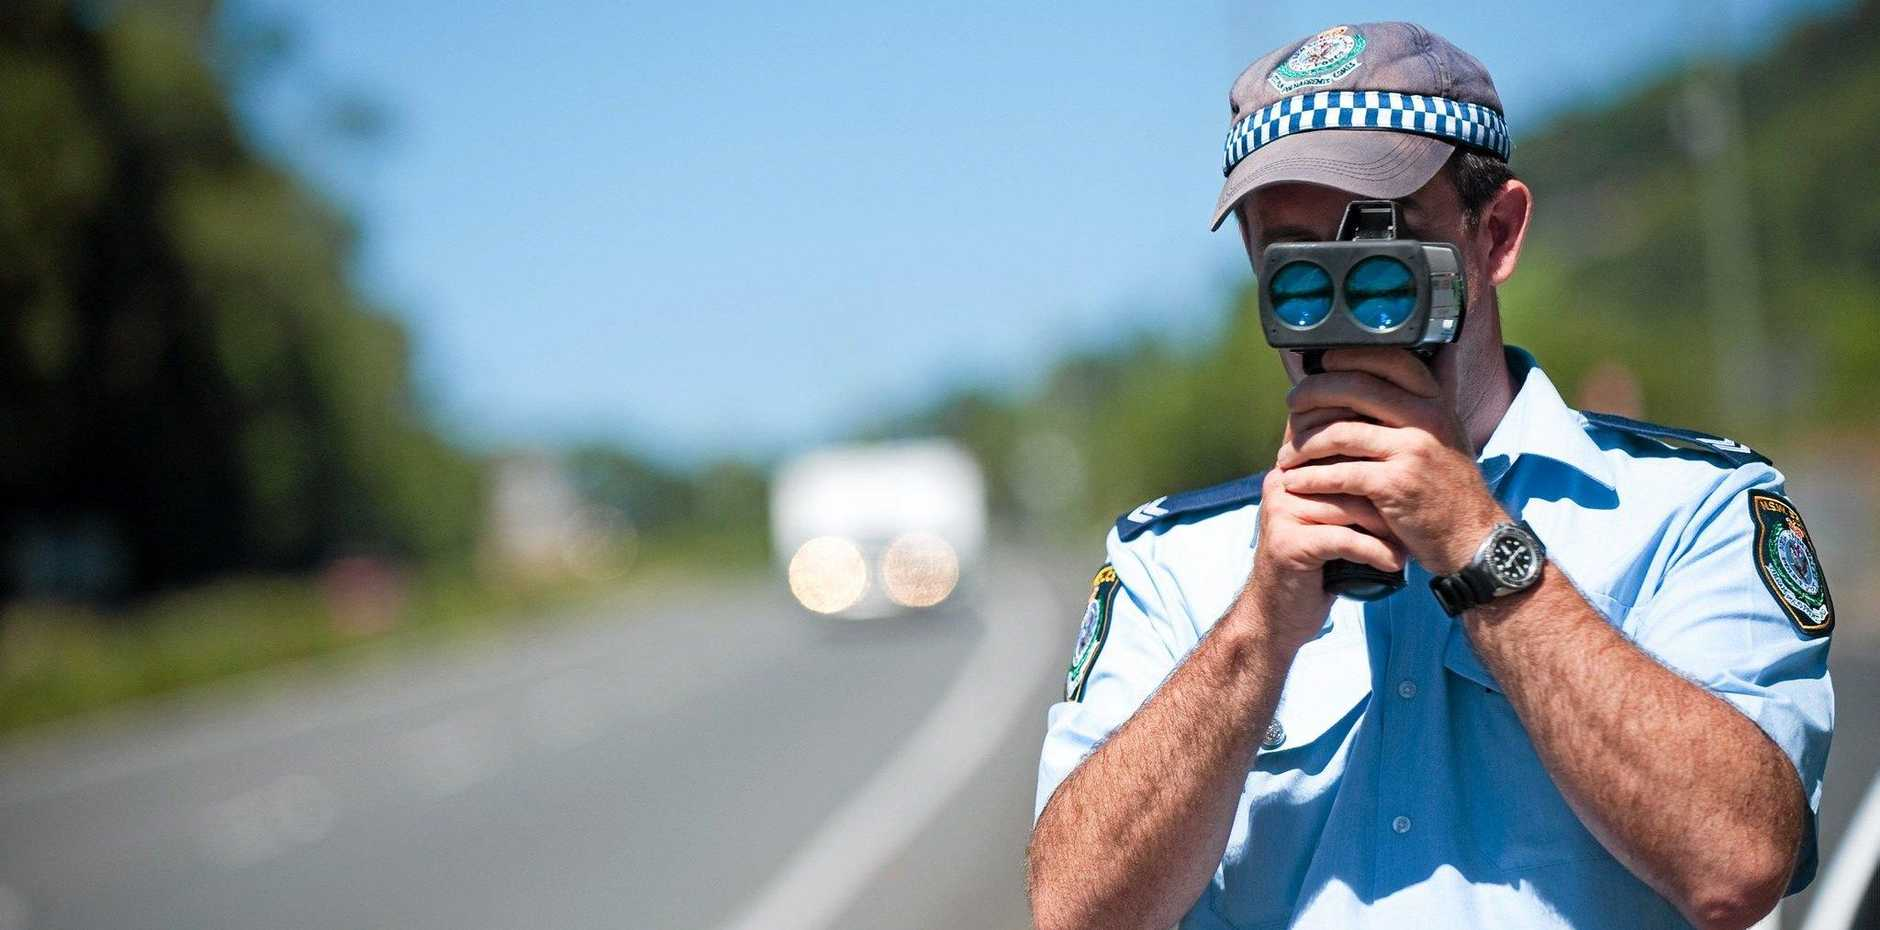 Highway Patrol officers sure hear some random excuses from speeding drivers.